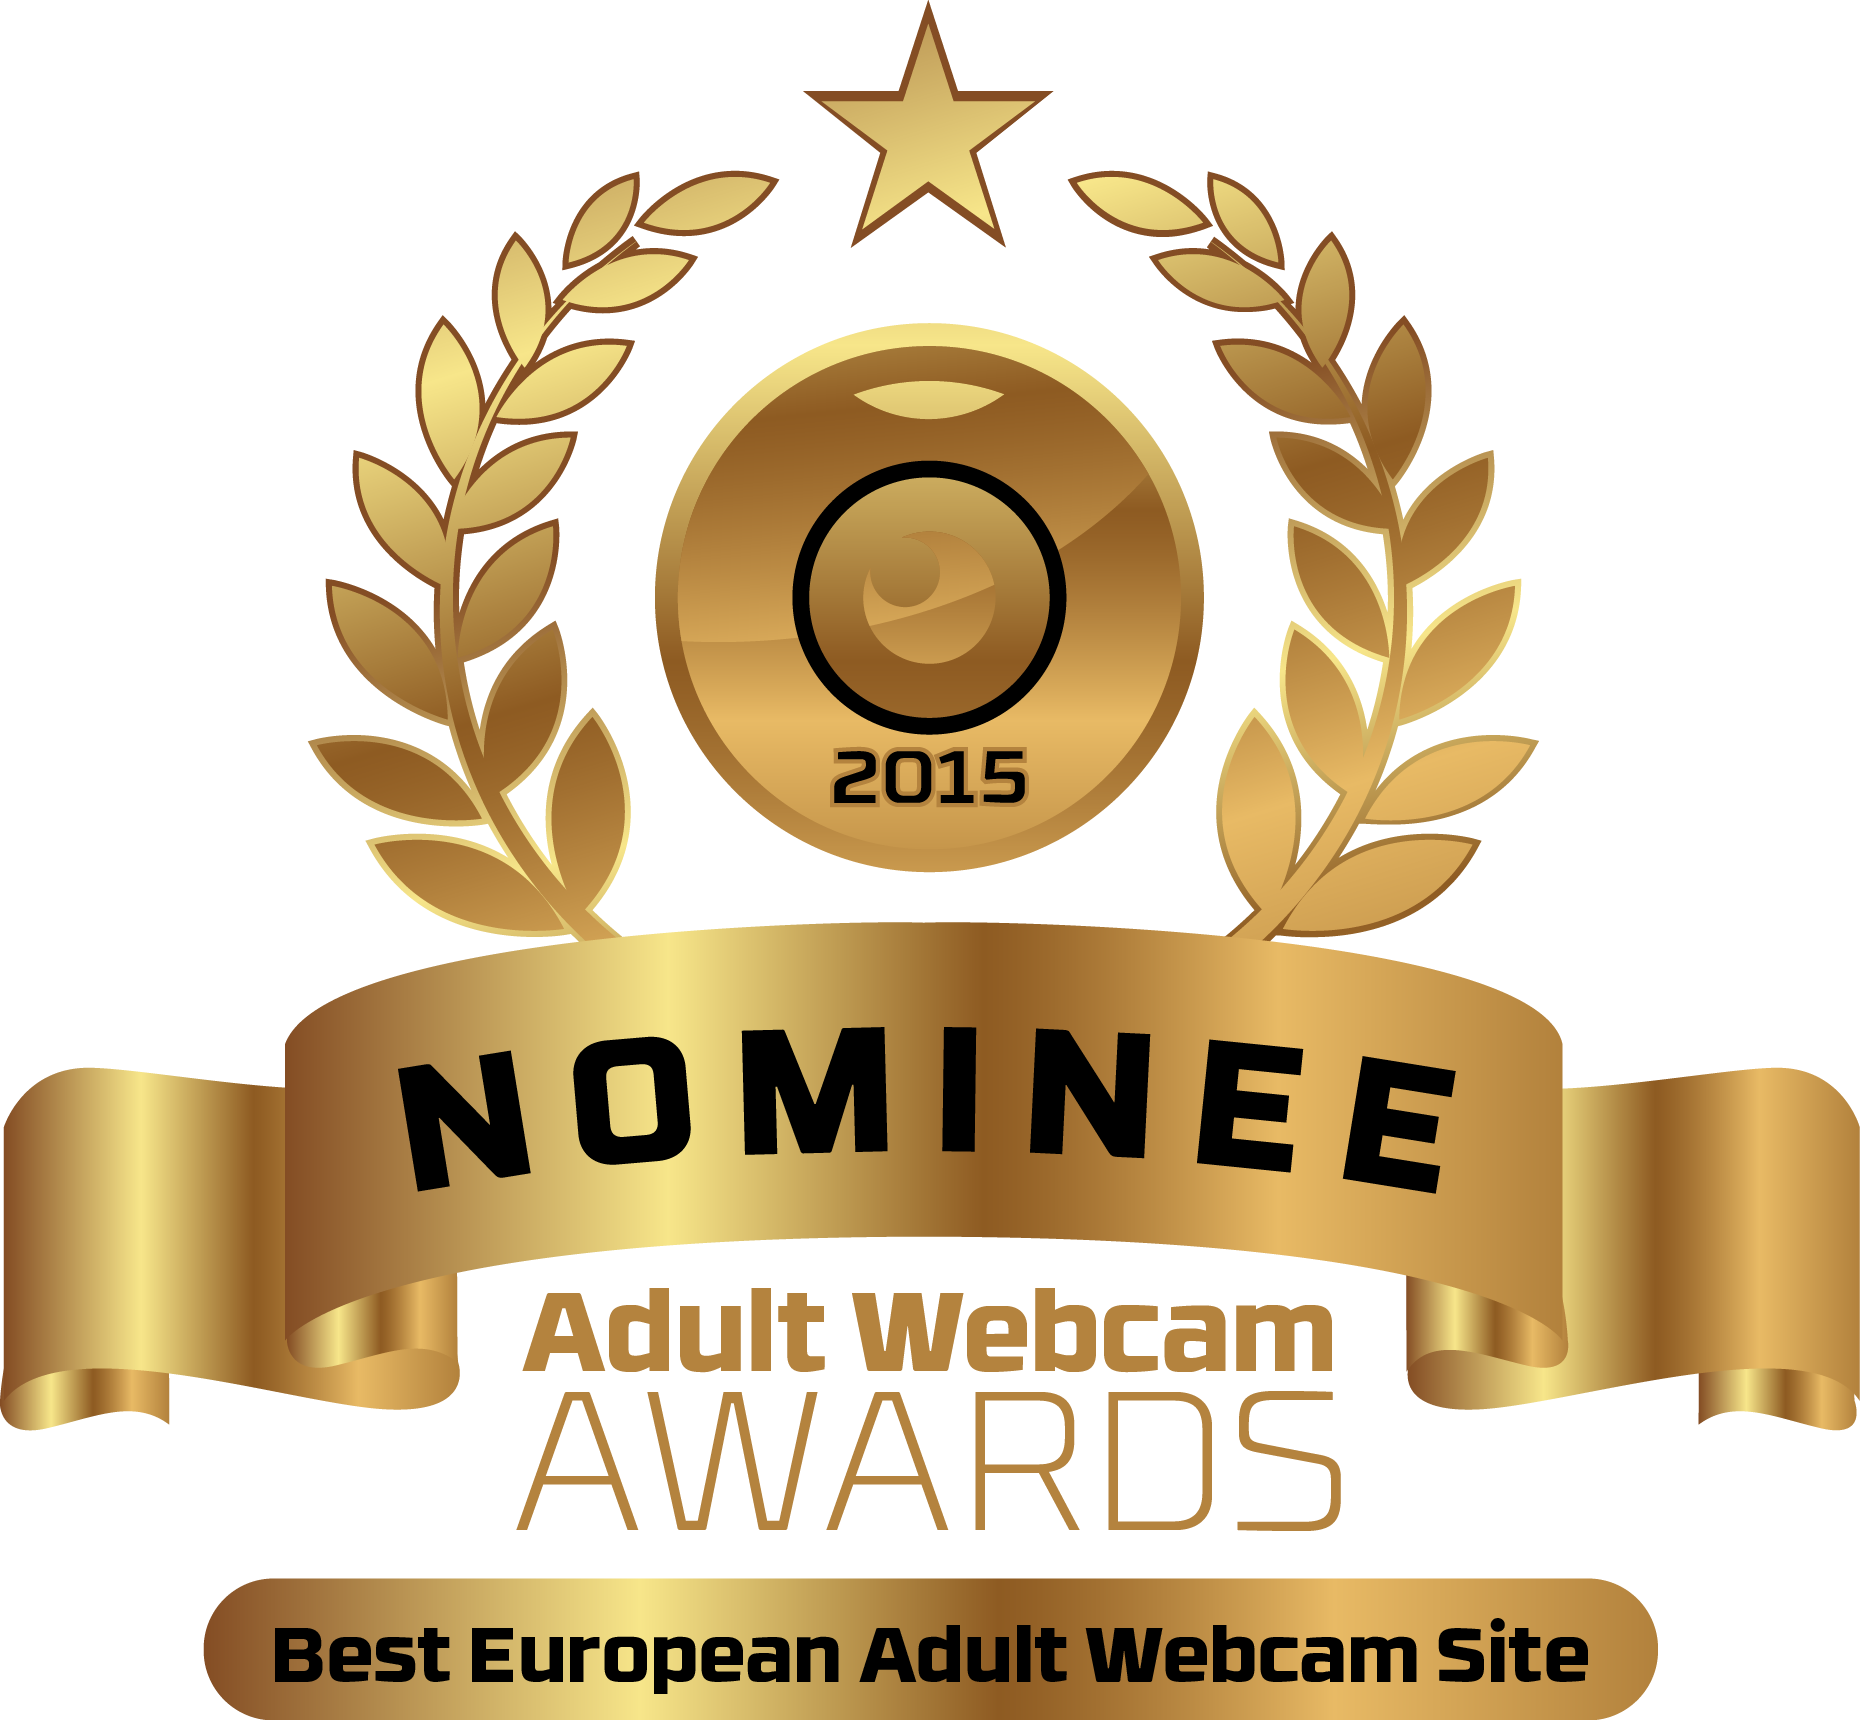 Best European Adult Webcam Site Nominee